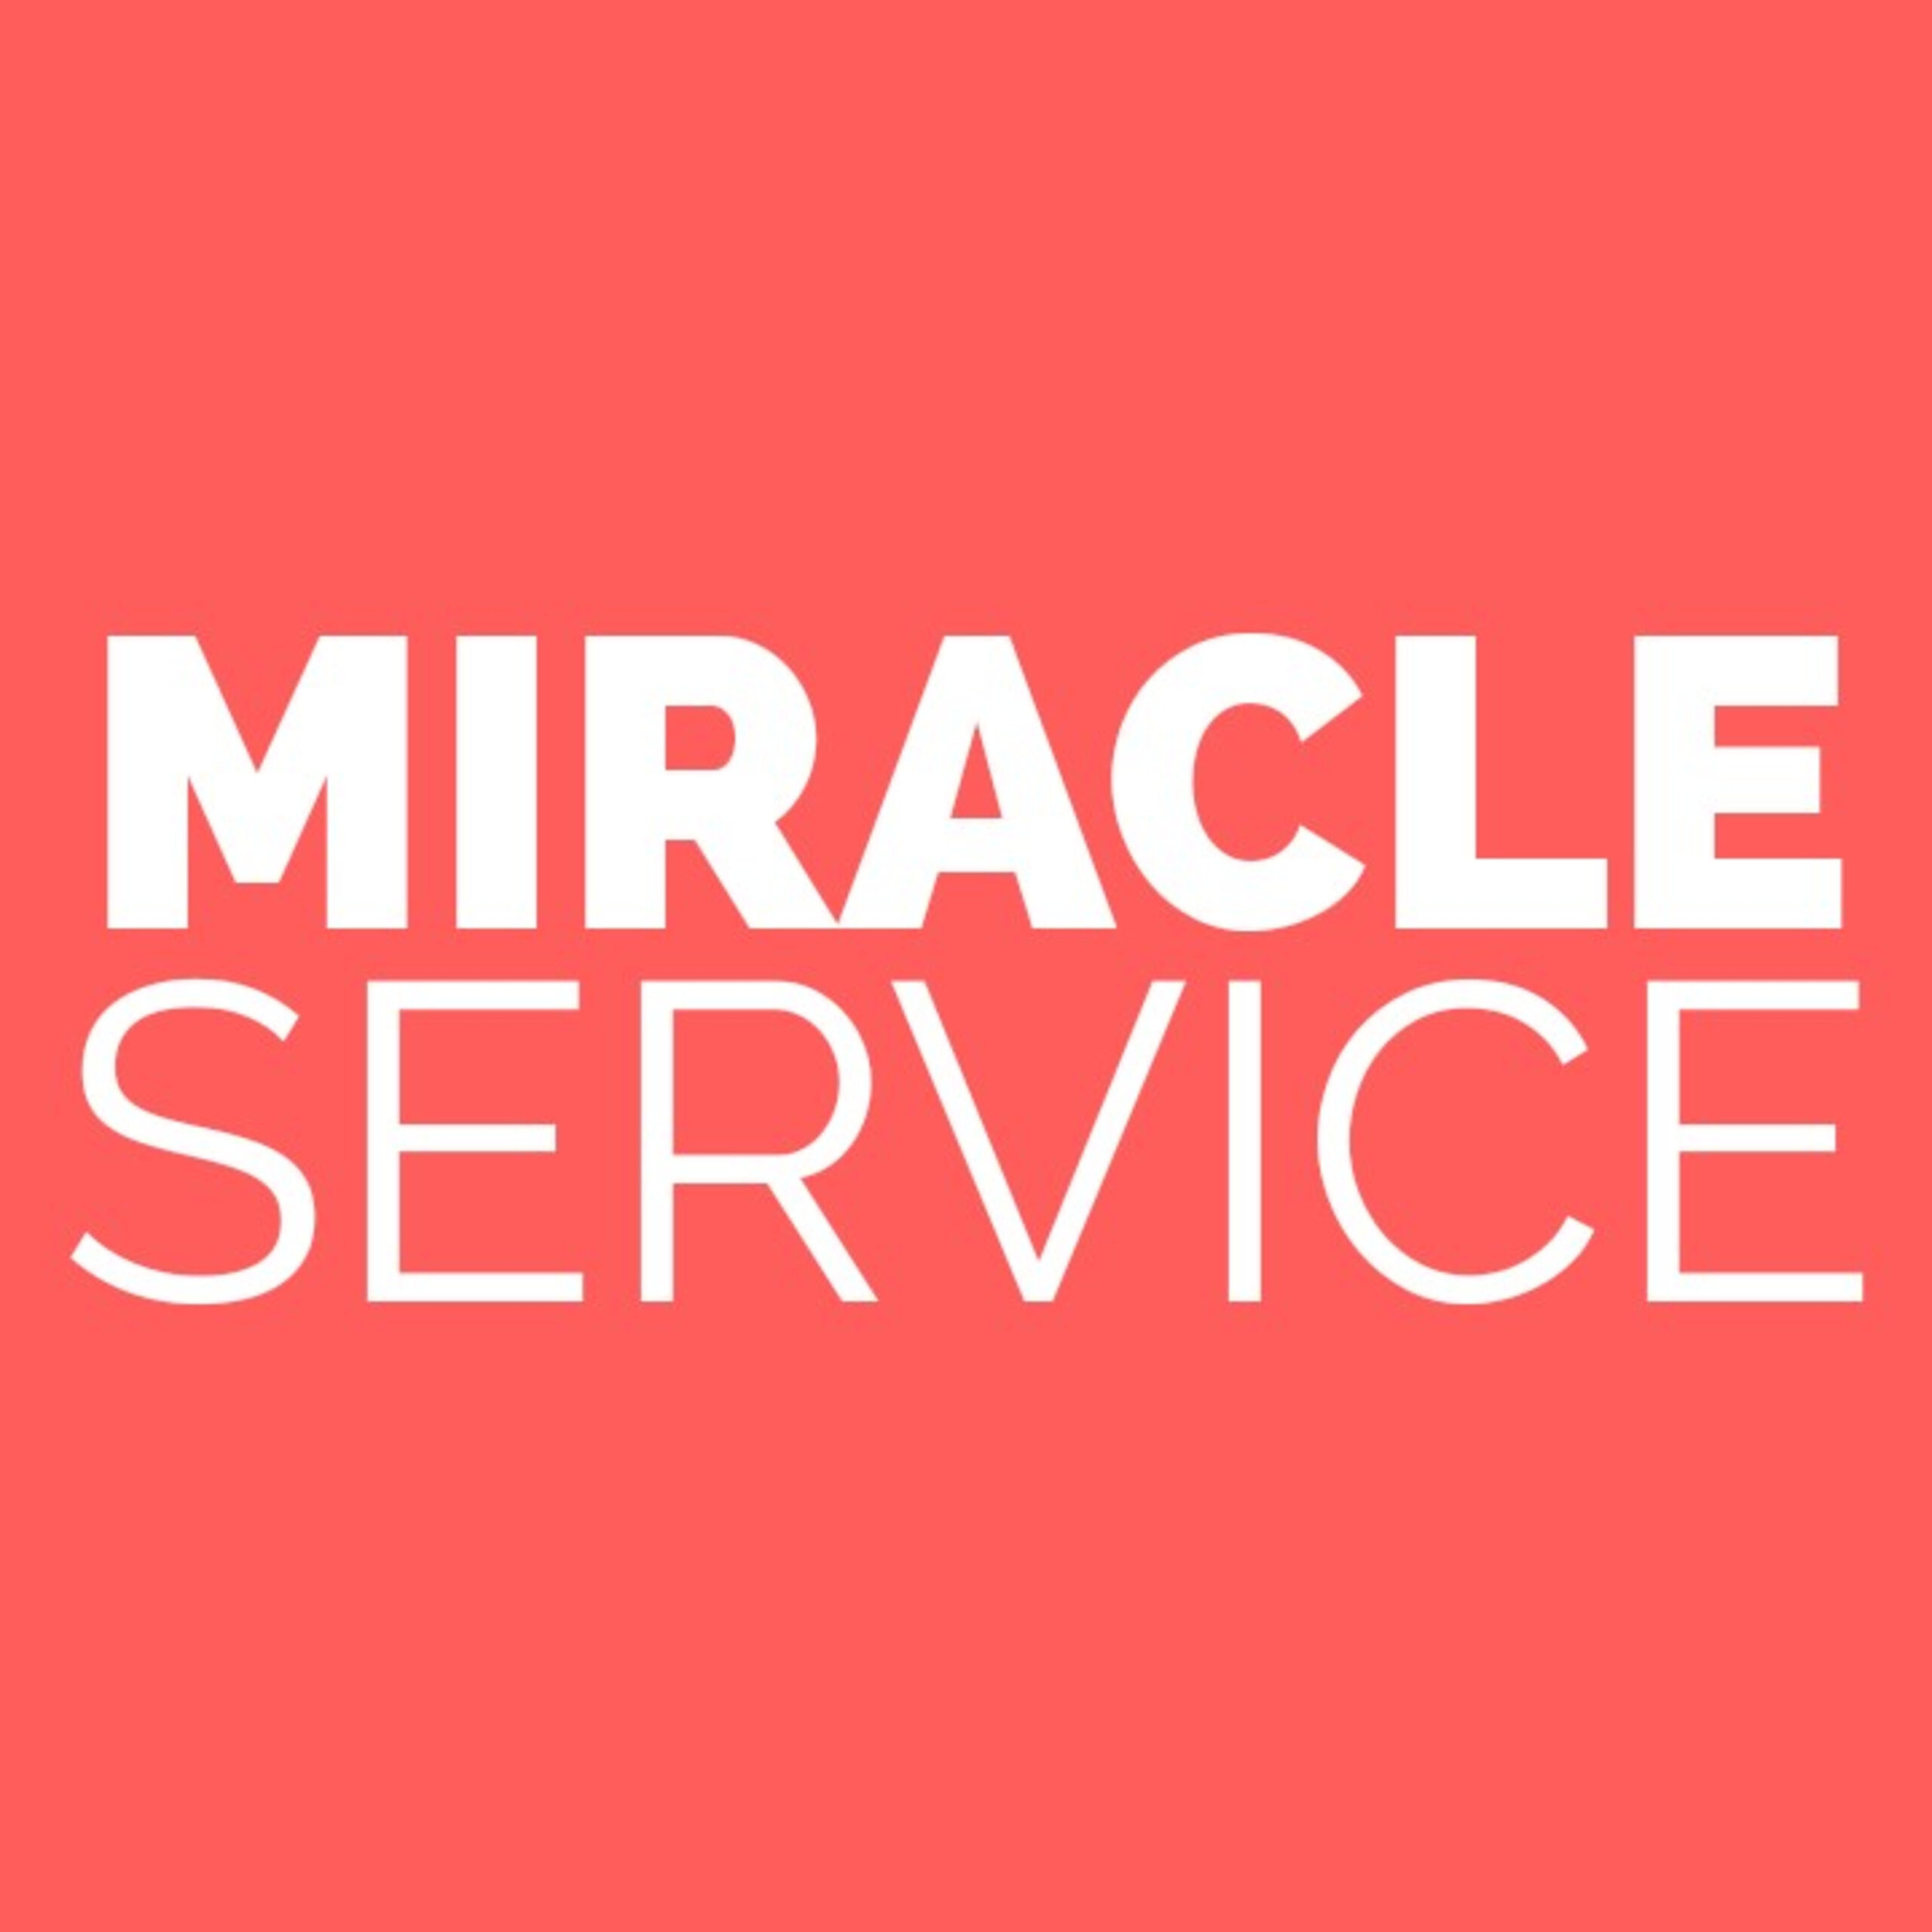 Miracle service on 10th Feb 2019